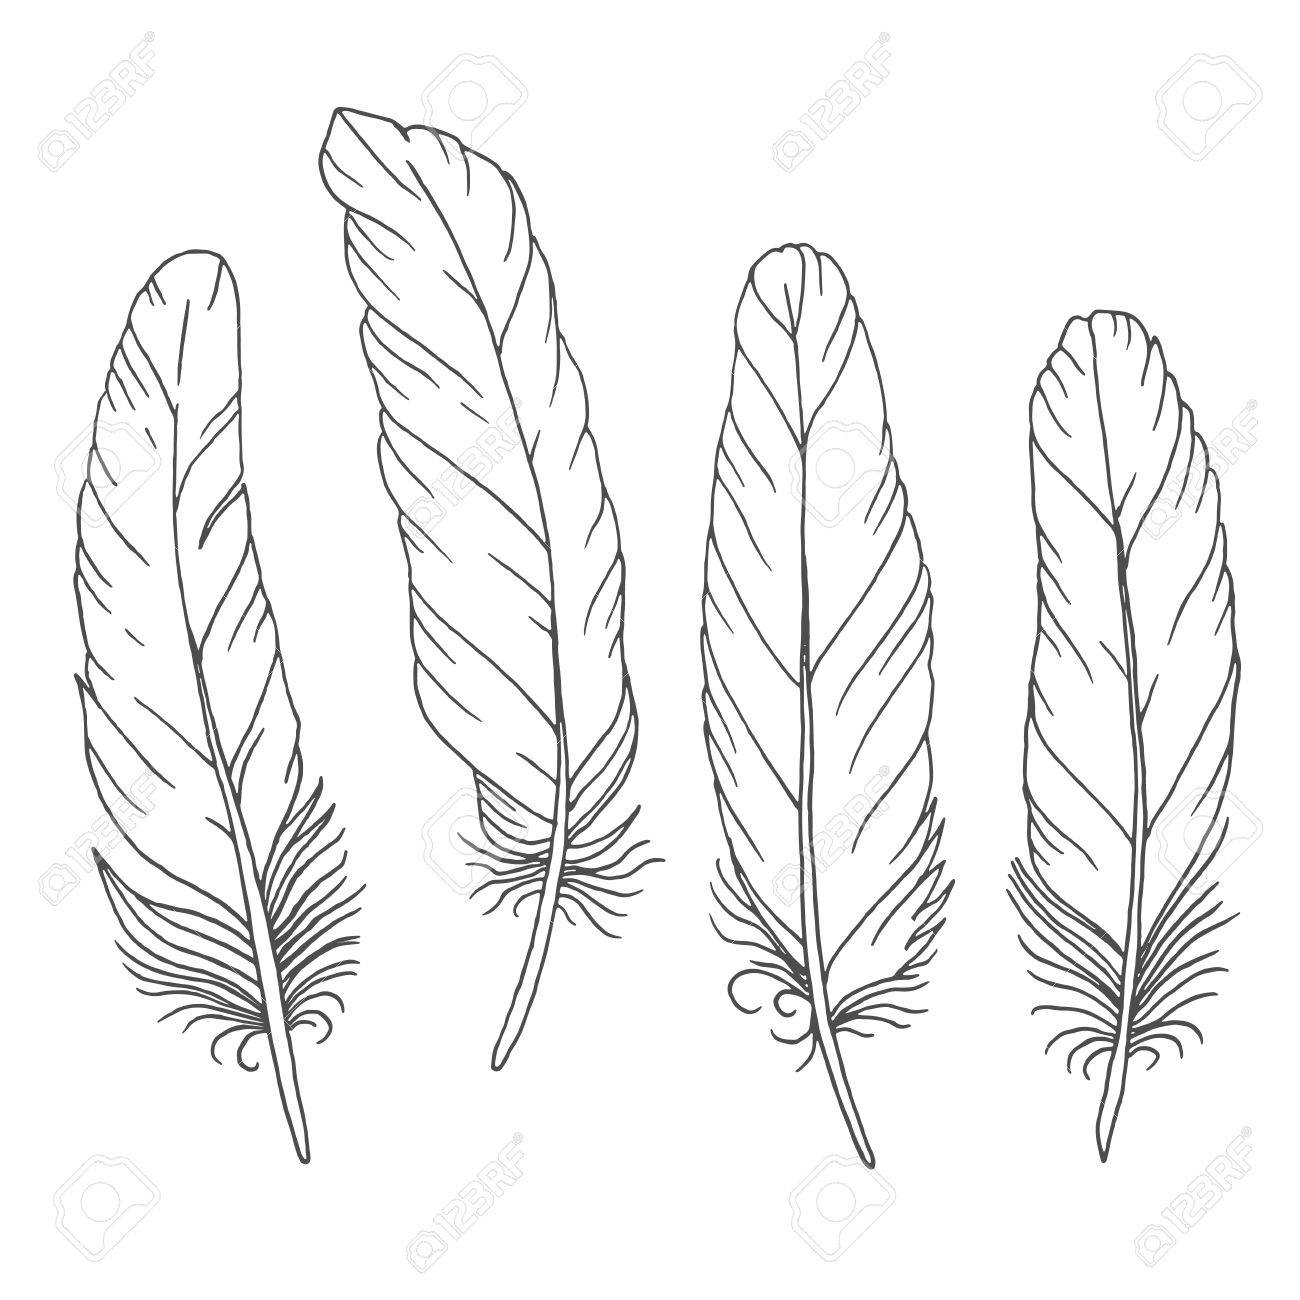 Line Art Feather : Feather drawing at getdrawings free for personal use